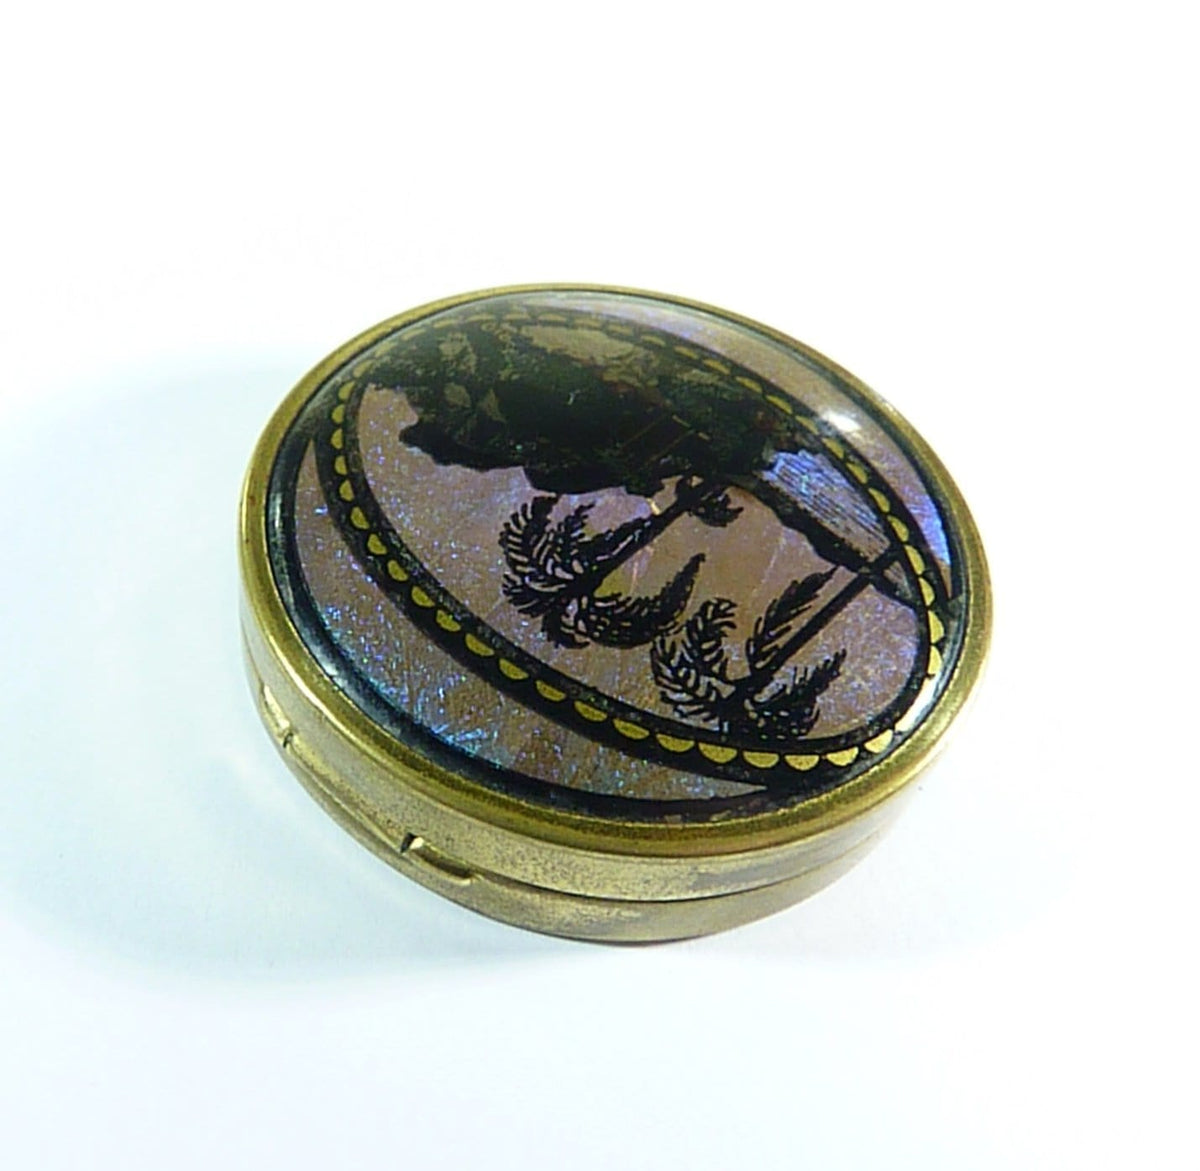 Antique Butterfly Wing Blue Morpho (Morpho Peleides) Powder Compact 1930s